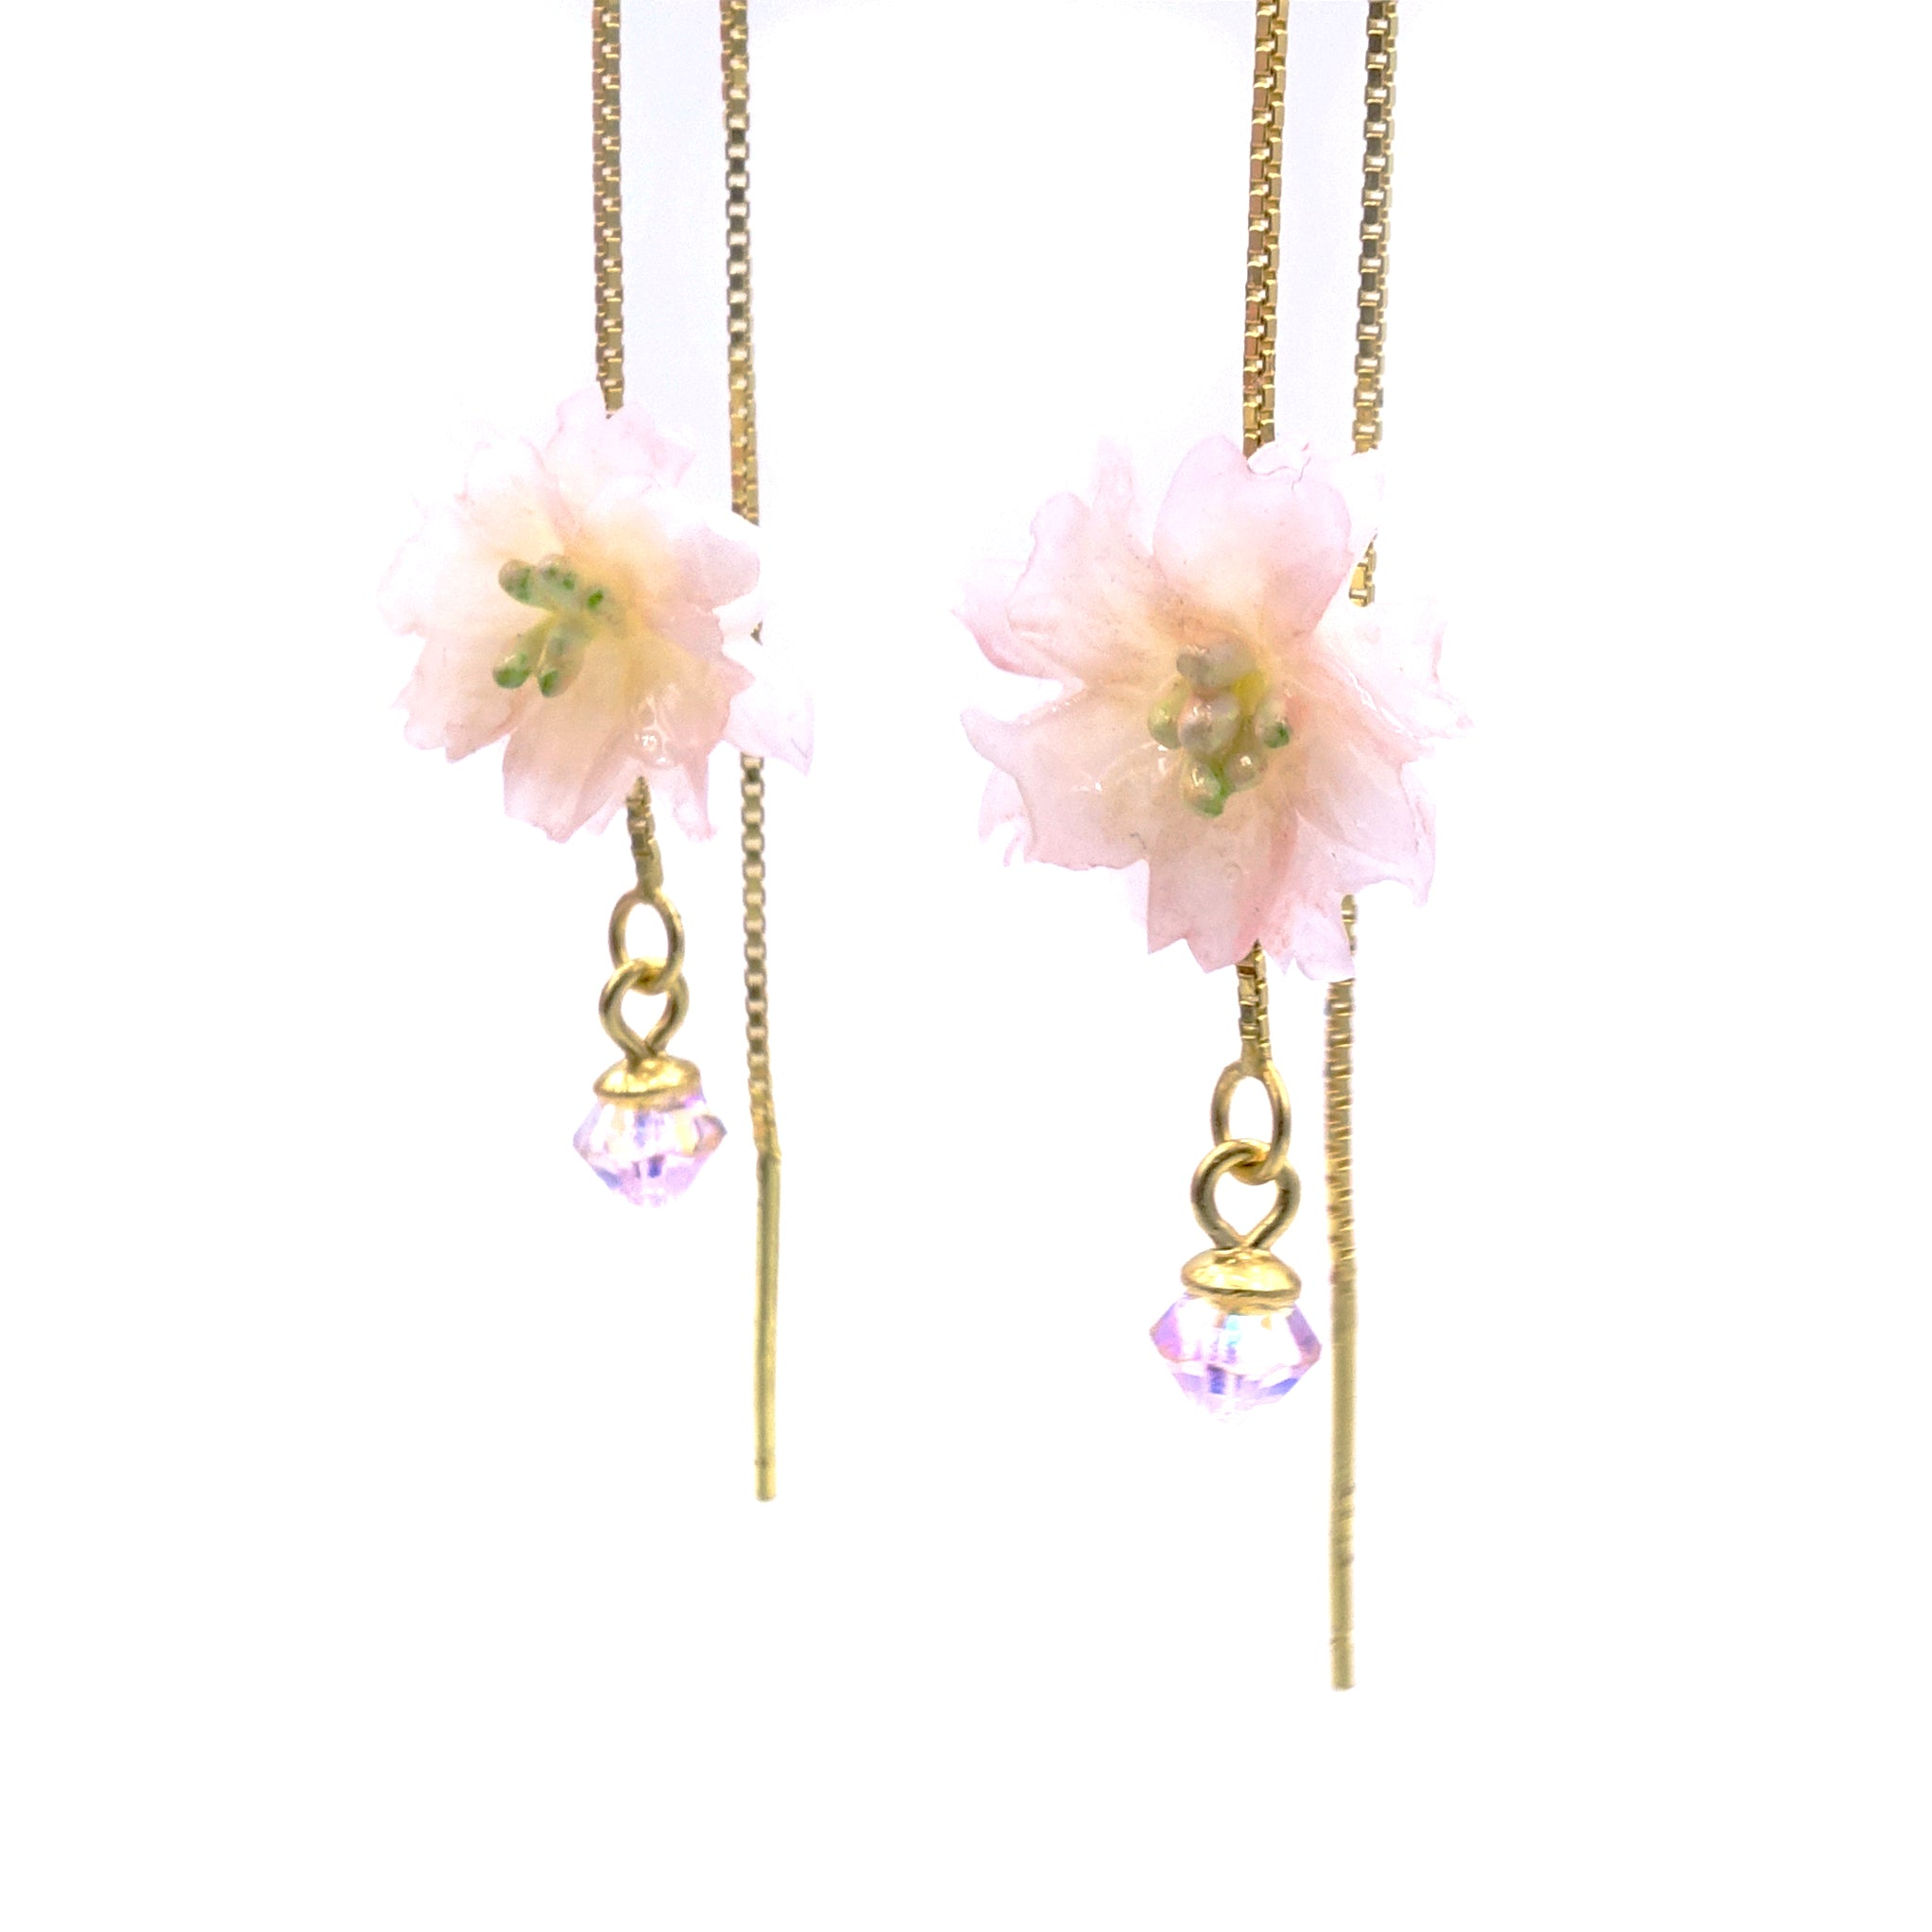 SAKURA COLLECTION Noon-Sakura Floral Ear Chains